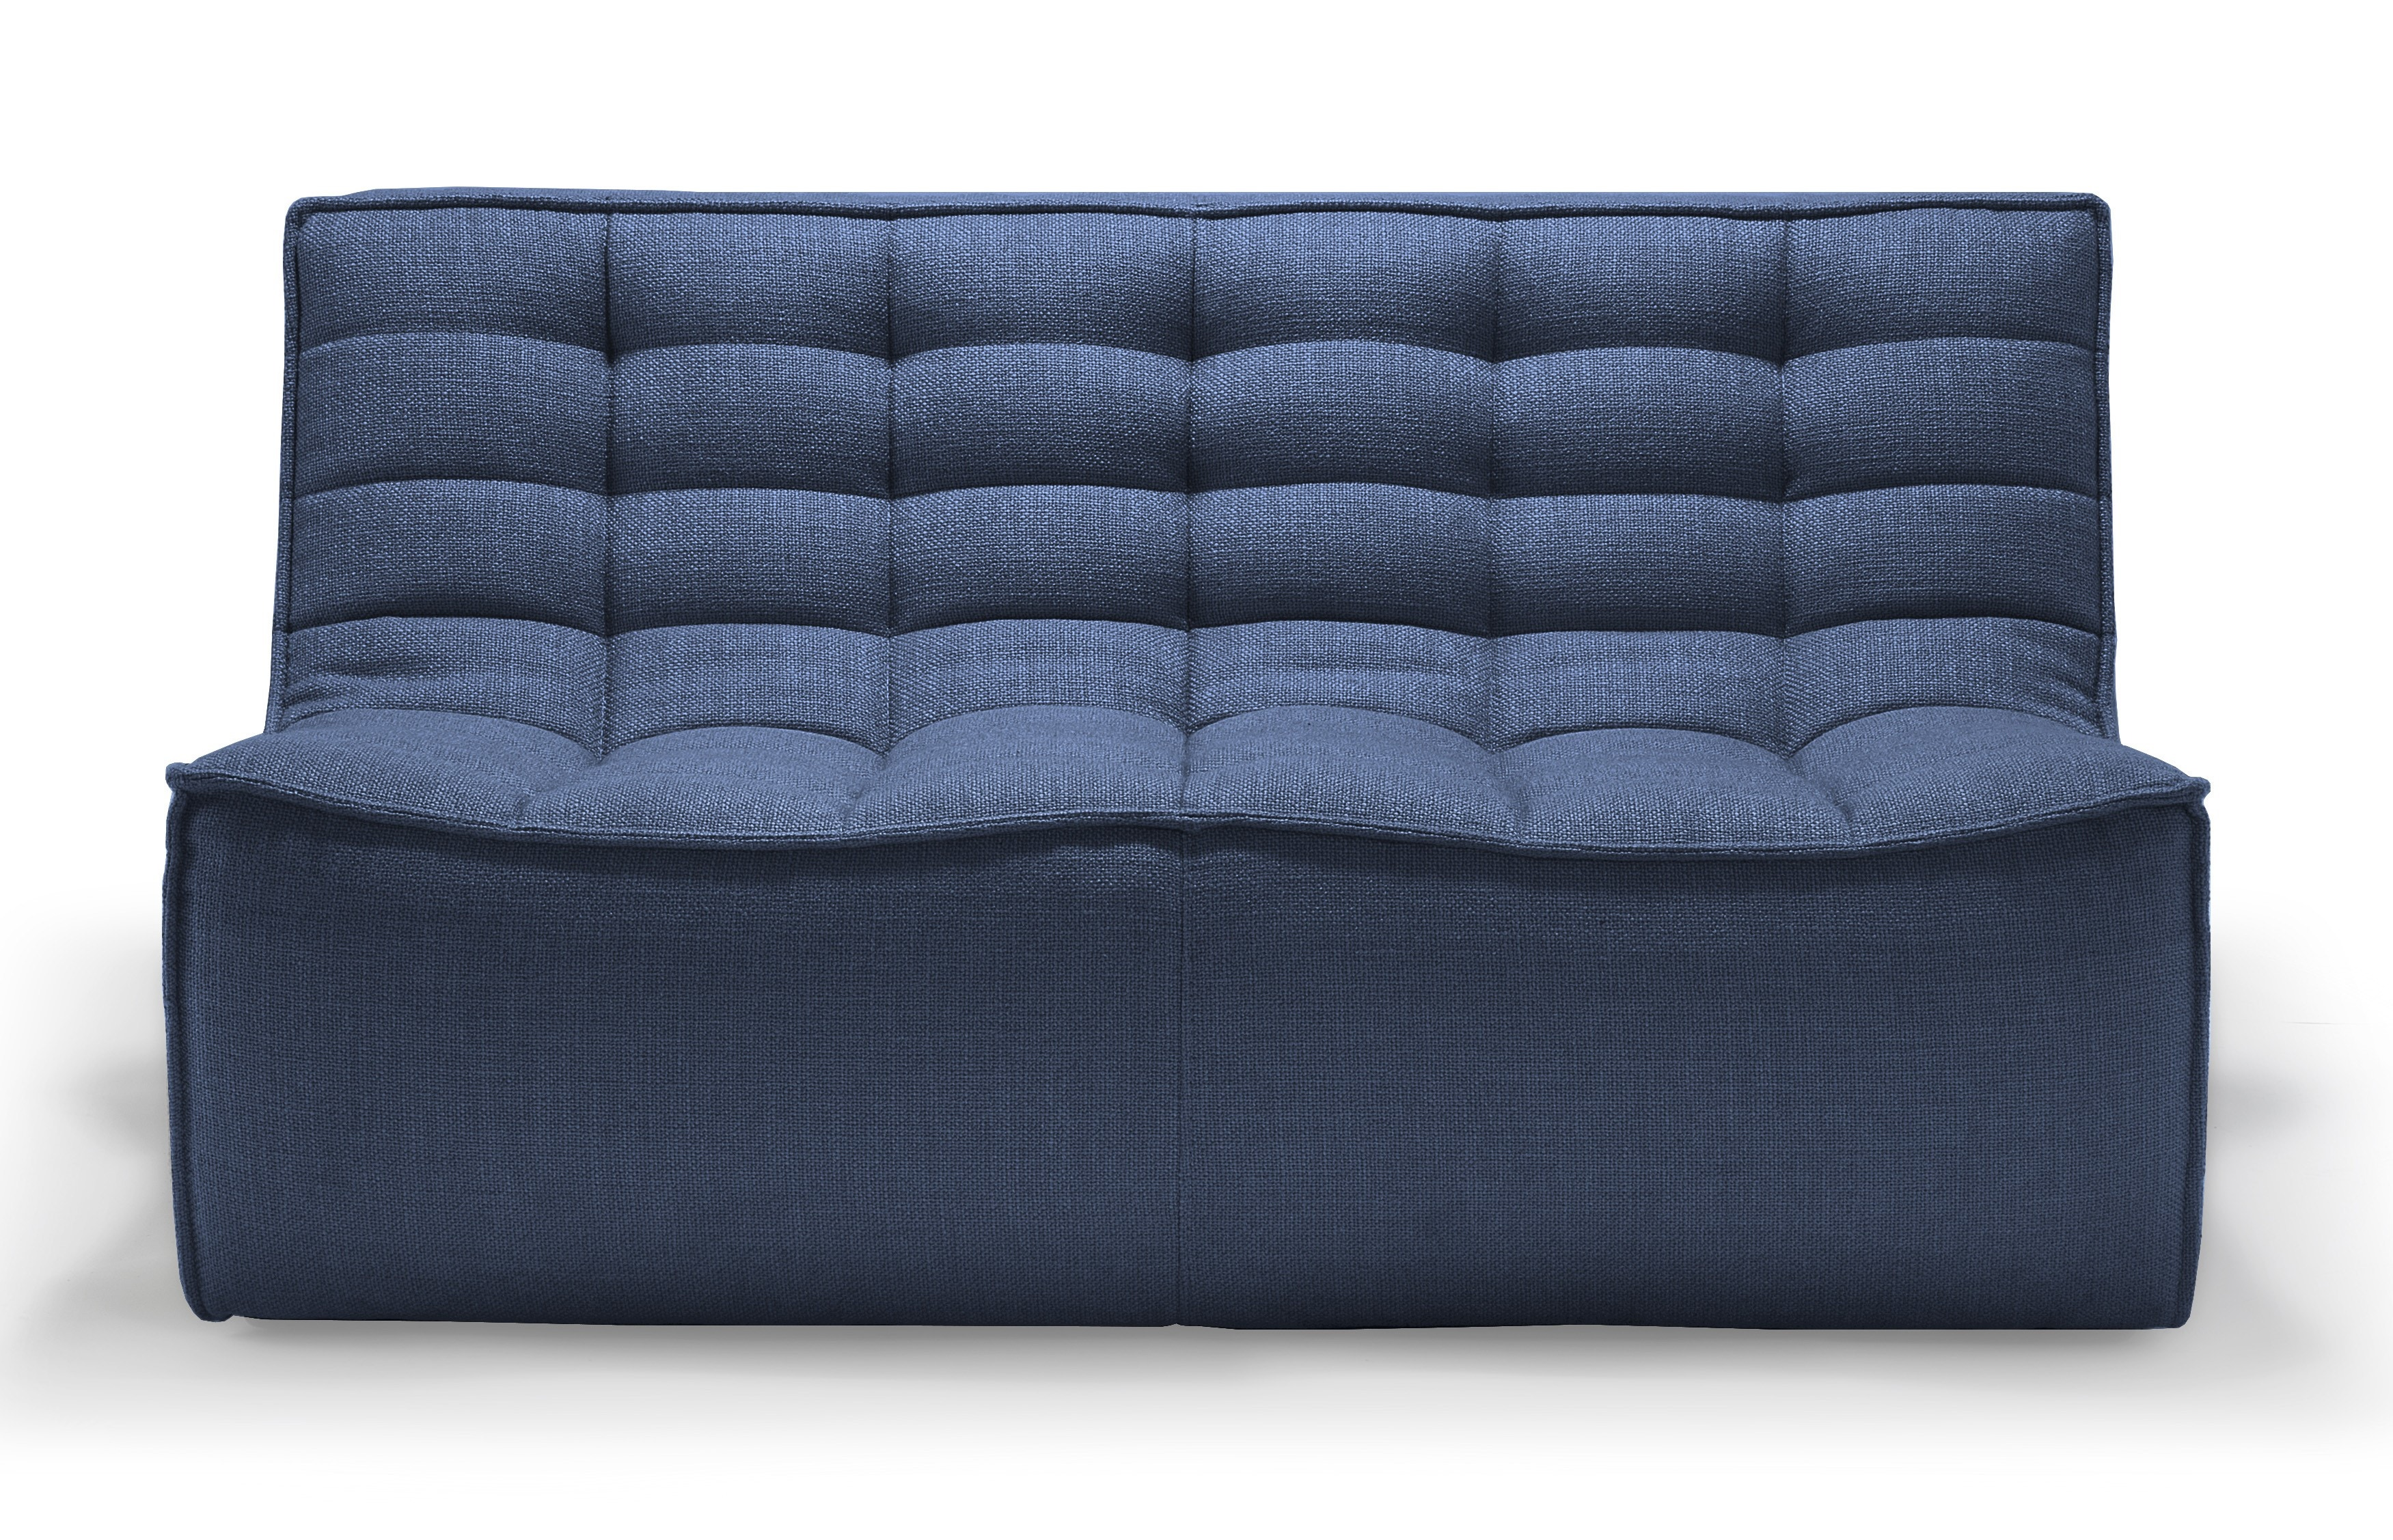 Ethnicraft N701 Two Seater Sofa